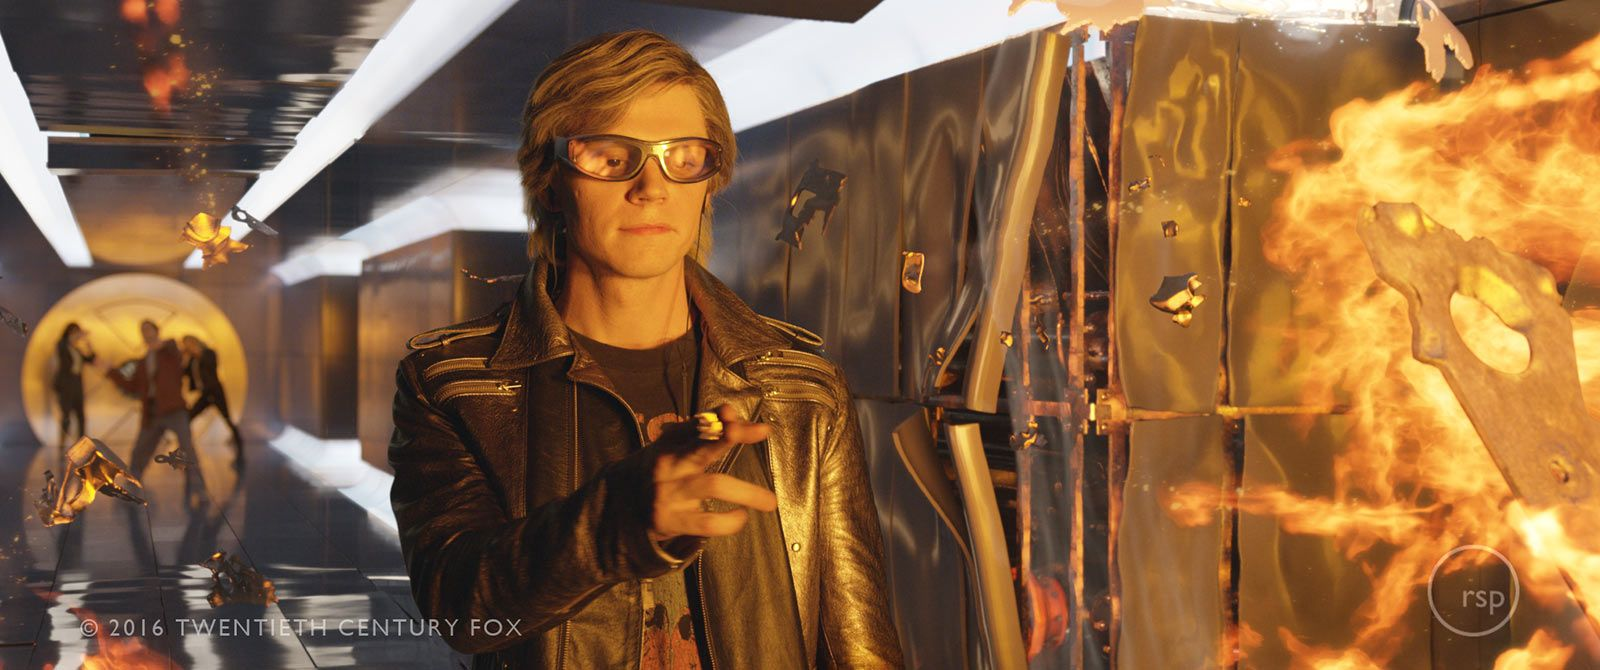 How They Made That X Men Apocalypse Scene Everyone Is Talking About X Men Evan Peters Quicksilver Xmen